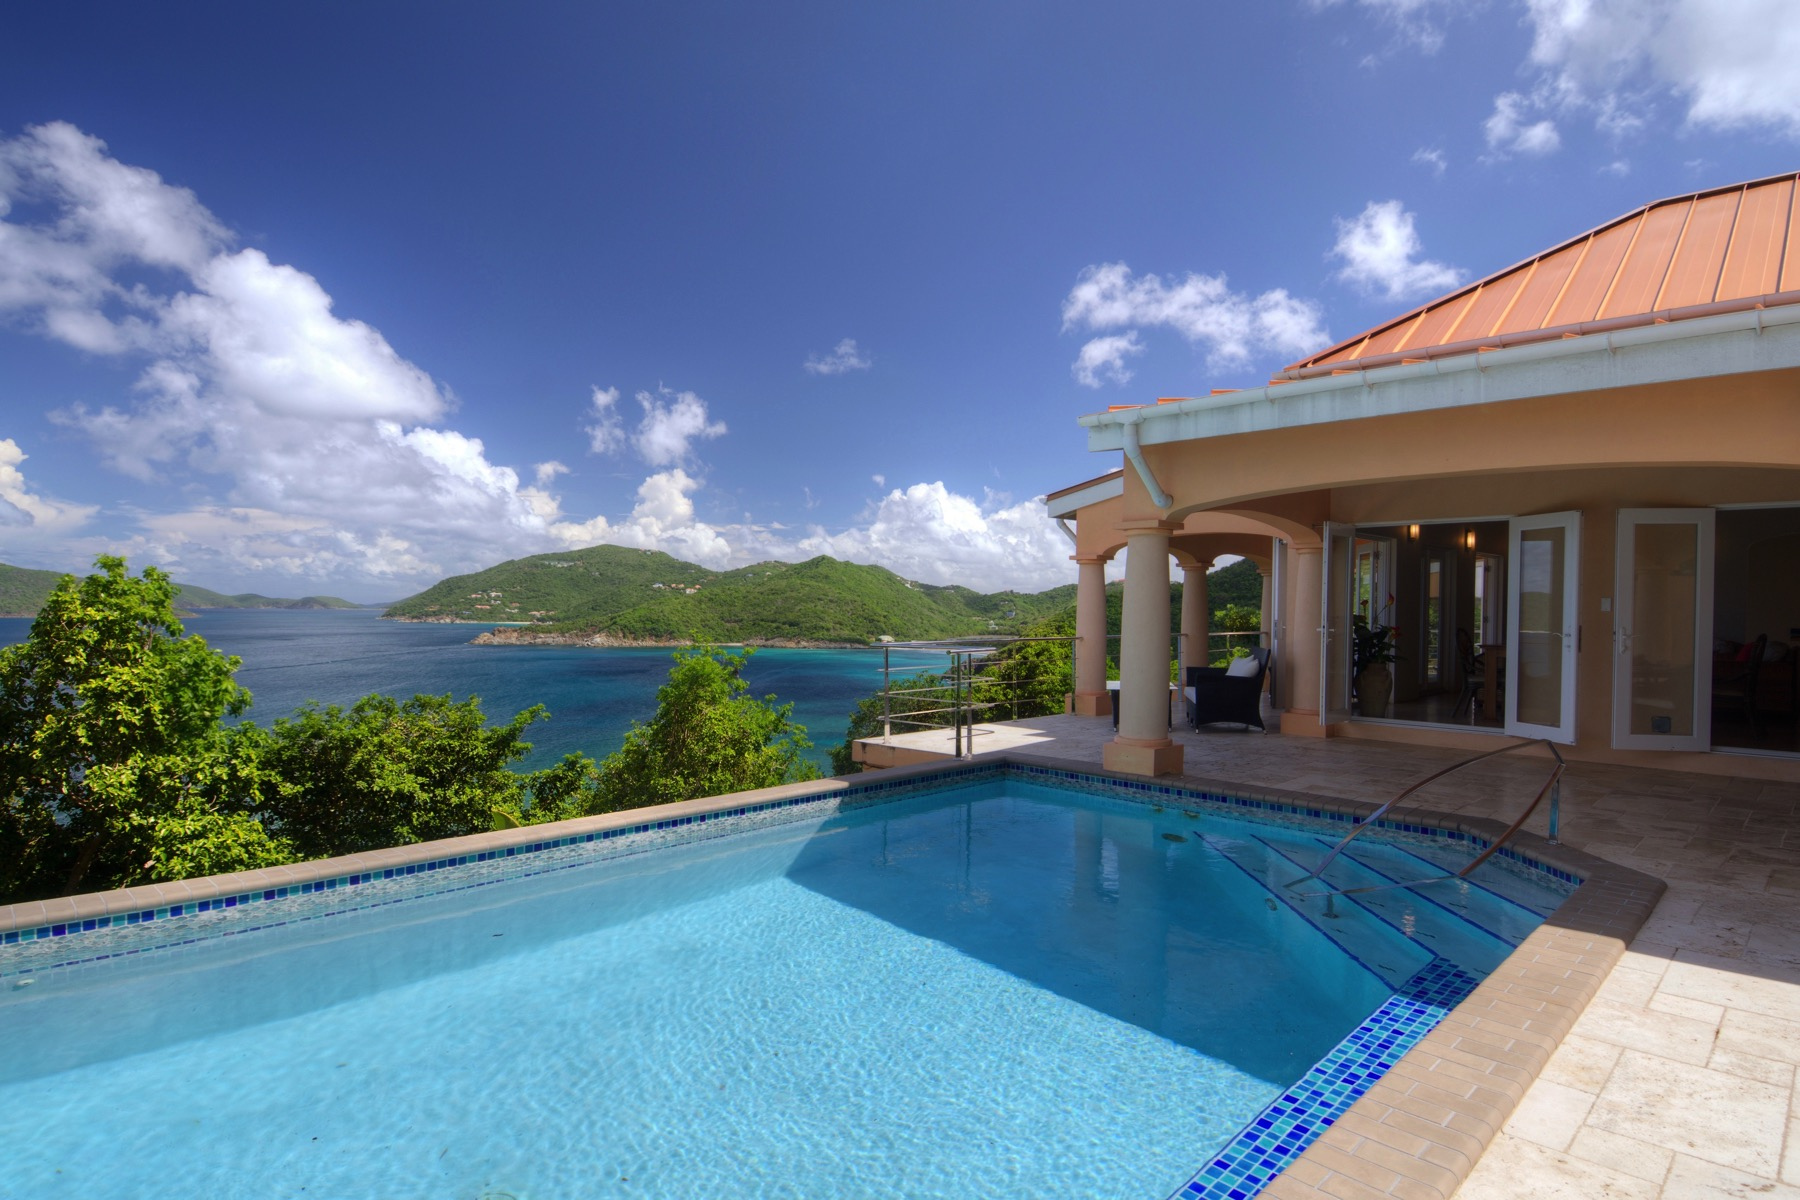 Single Family Home for Sale at Rock Haven Cooten Bay, Tortola British Virgin Islands